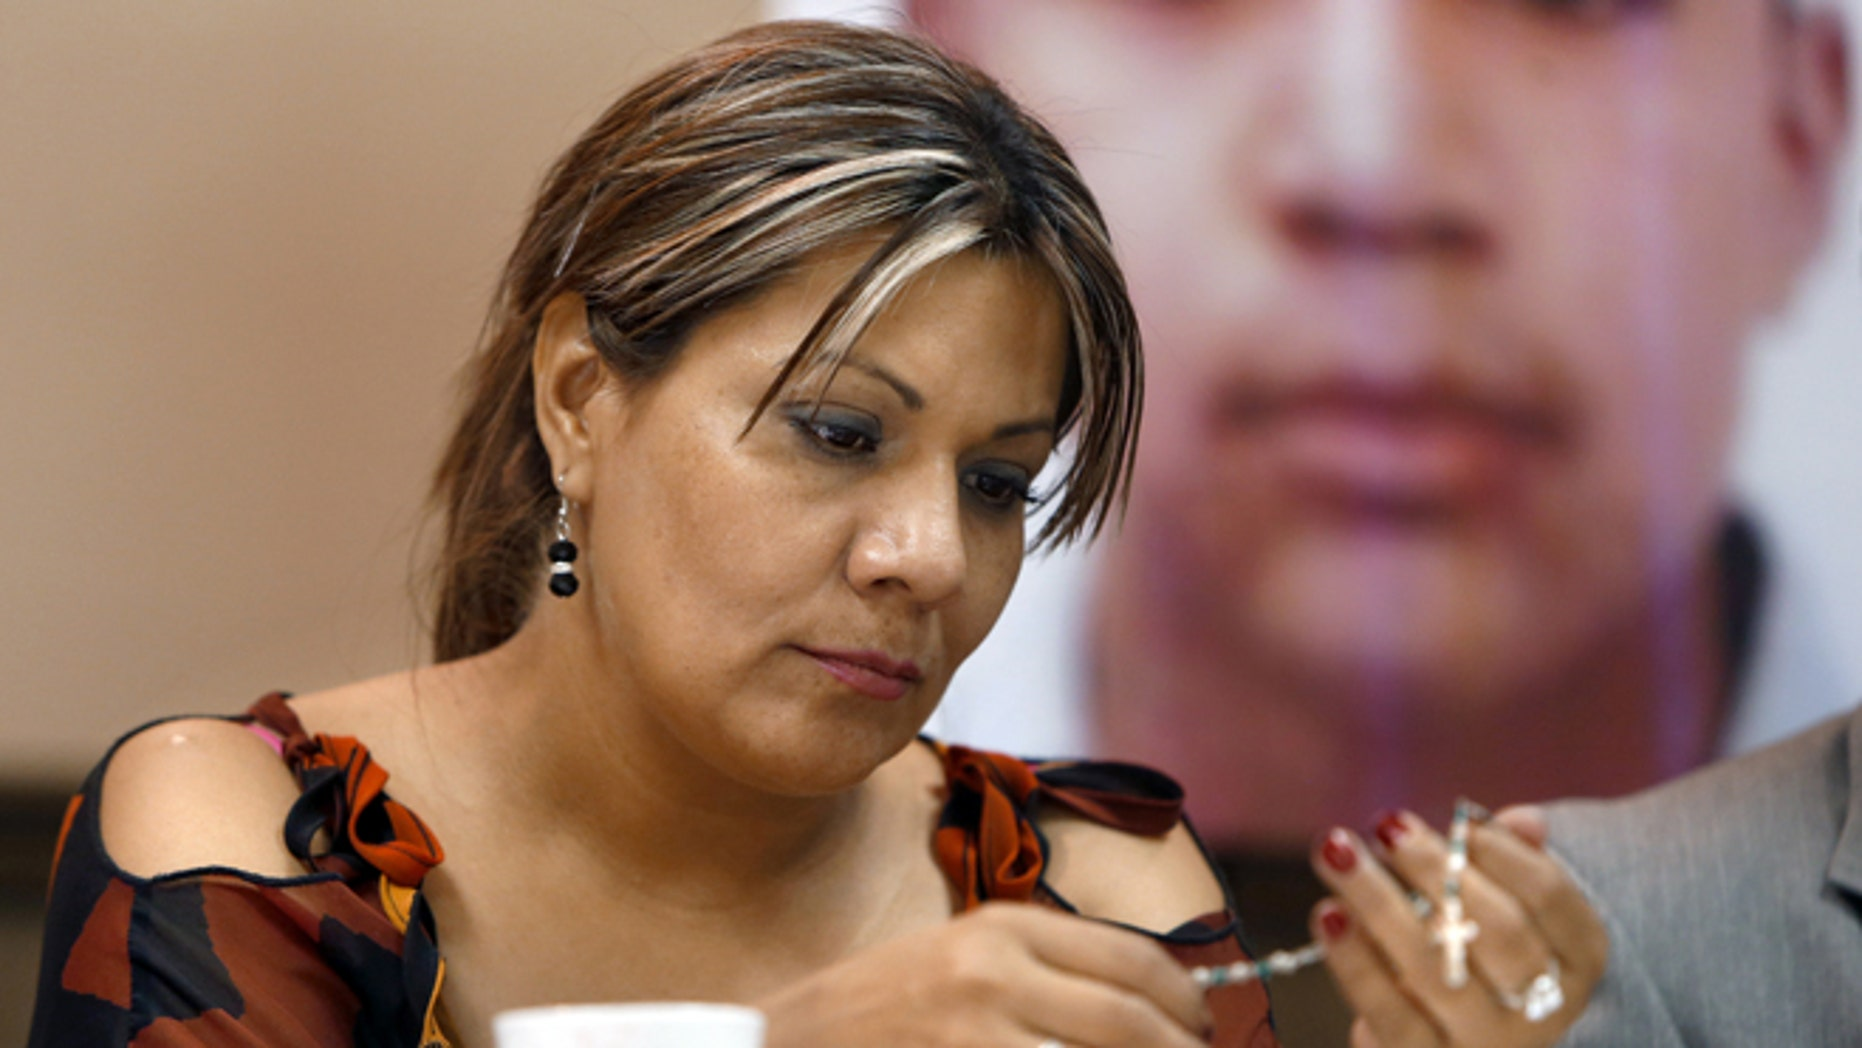 Araceli Rodríguez handles a rosary during a news conference in Nogales, Mexico, that belonged to her son José Antonio Elena Rodríguez, pictured behind her, who was shot and killed by U.S. Border Patrol agent in October 2012. Federal authorities have charged a U.S. Border Patrol agent who killed a Mexican teenager in a cross-border shooting with second-degree murder. Luis Parra, the attorney for the mother of Jose Antonio Elena Rodriguez, told The Associated Press that a federal grand jury on Wednesday, Sept. 23, 2015, indicted agent Lonnie Swartz. (Kelly Presnell/Arizona Daily Star via AP,File)